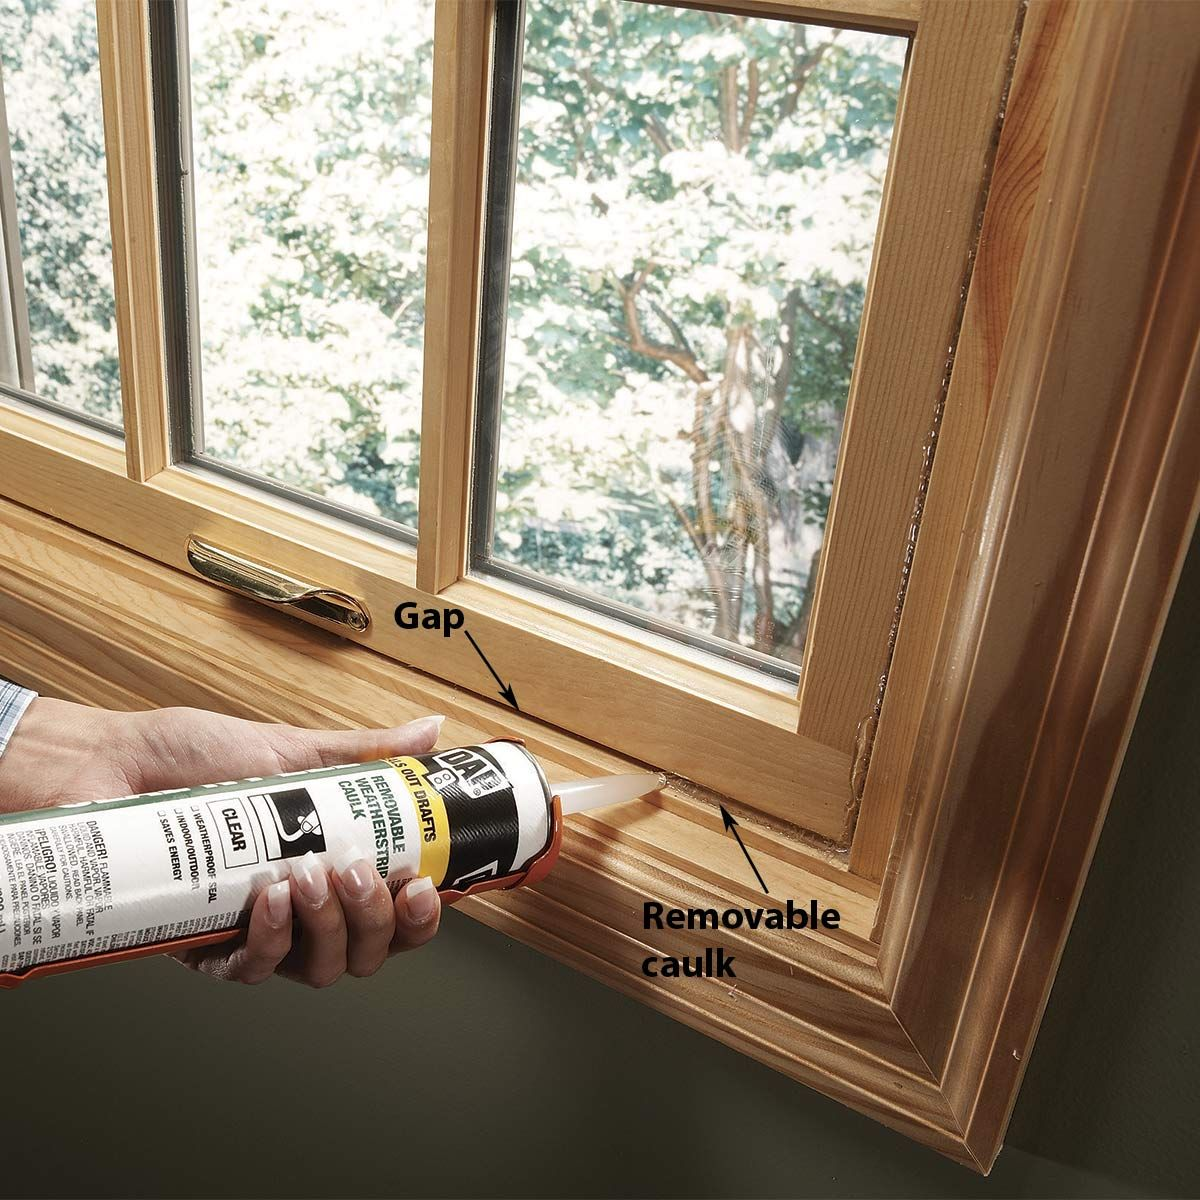 How To Seal Leaky Windows Without That Hideous Plastic Film Vinyl Replacement Windows Window Insulation Caulking Windows